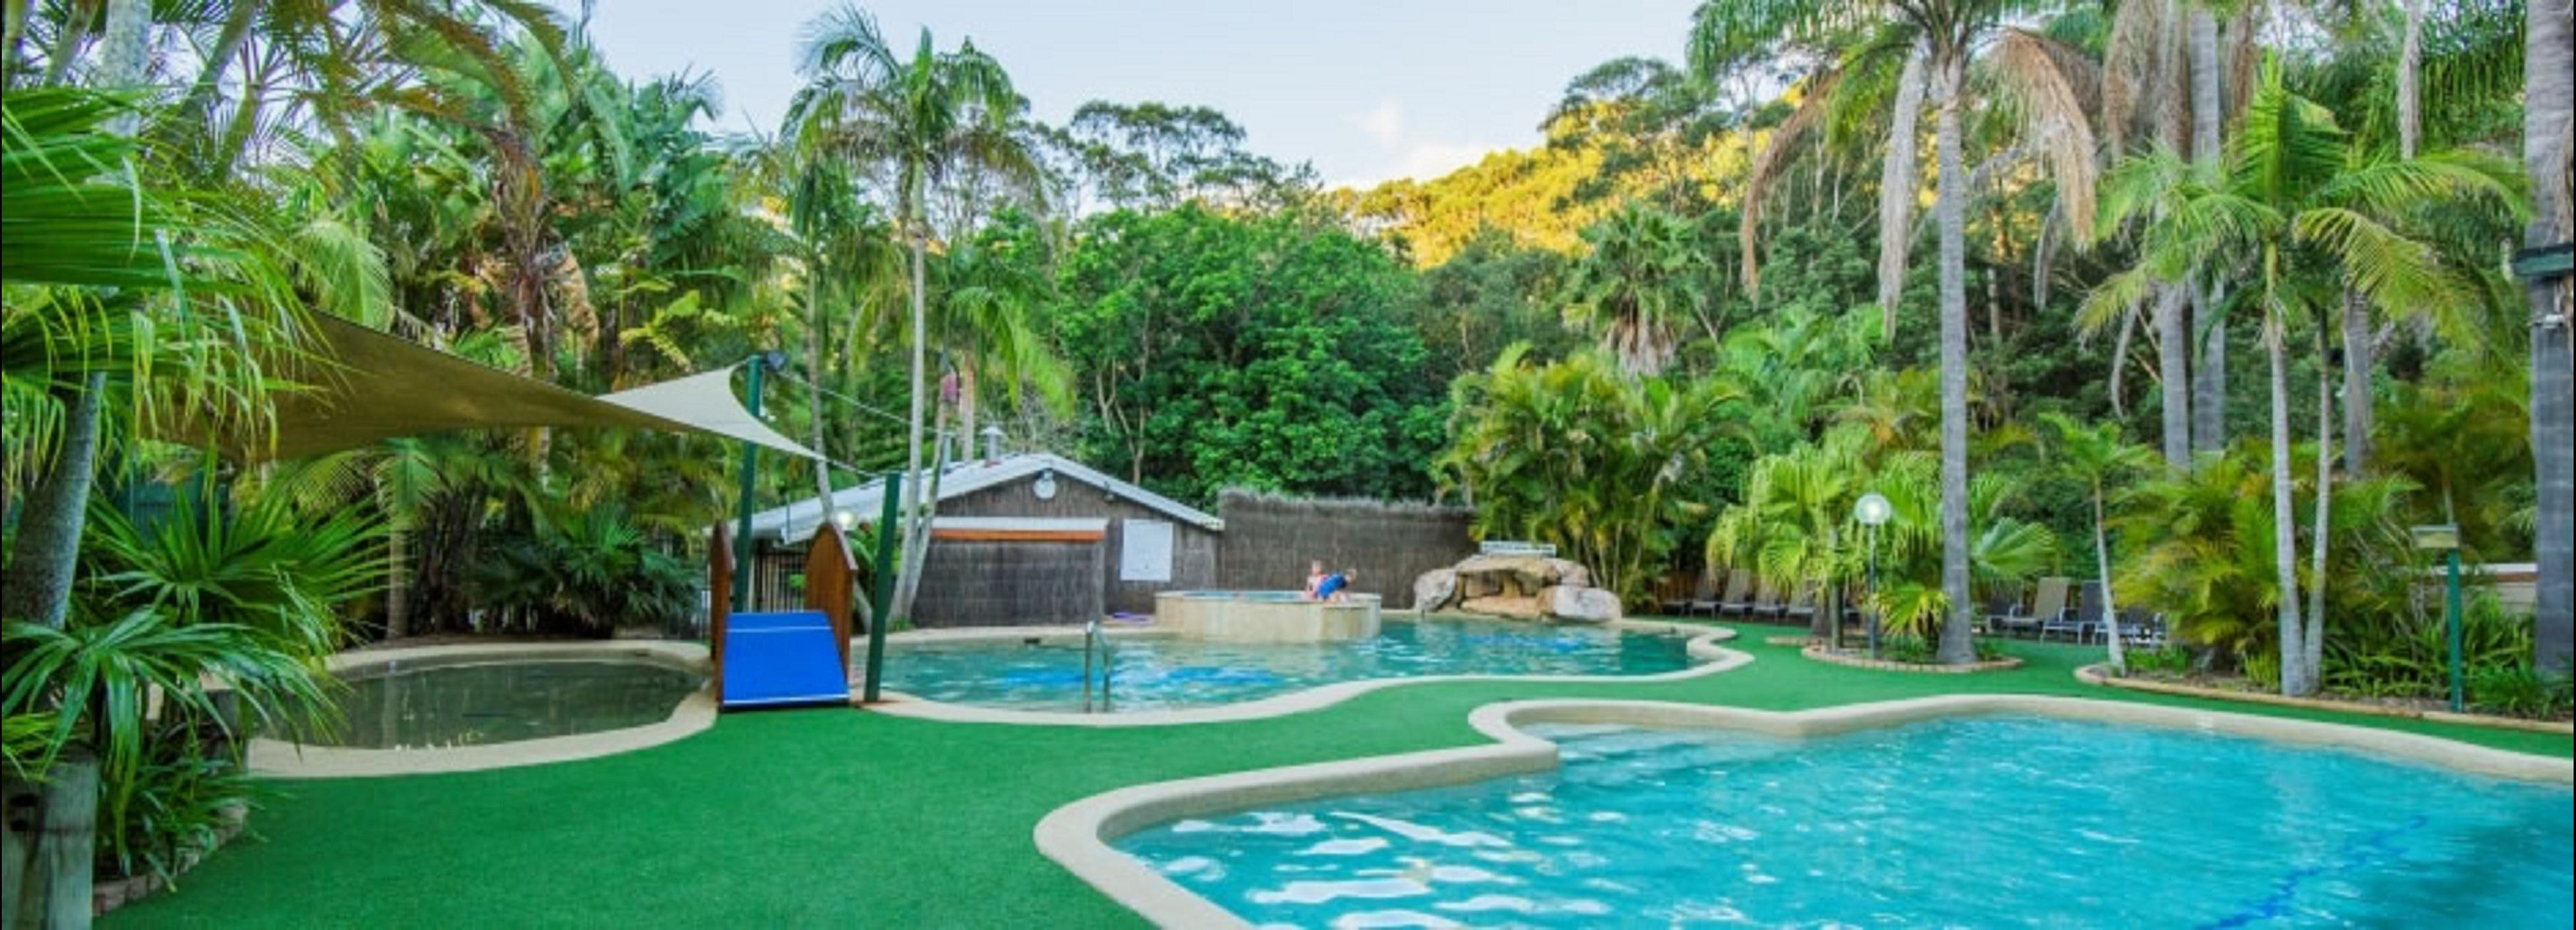 The Palms at Avoca - Tourism Brisbane